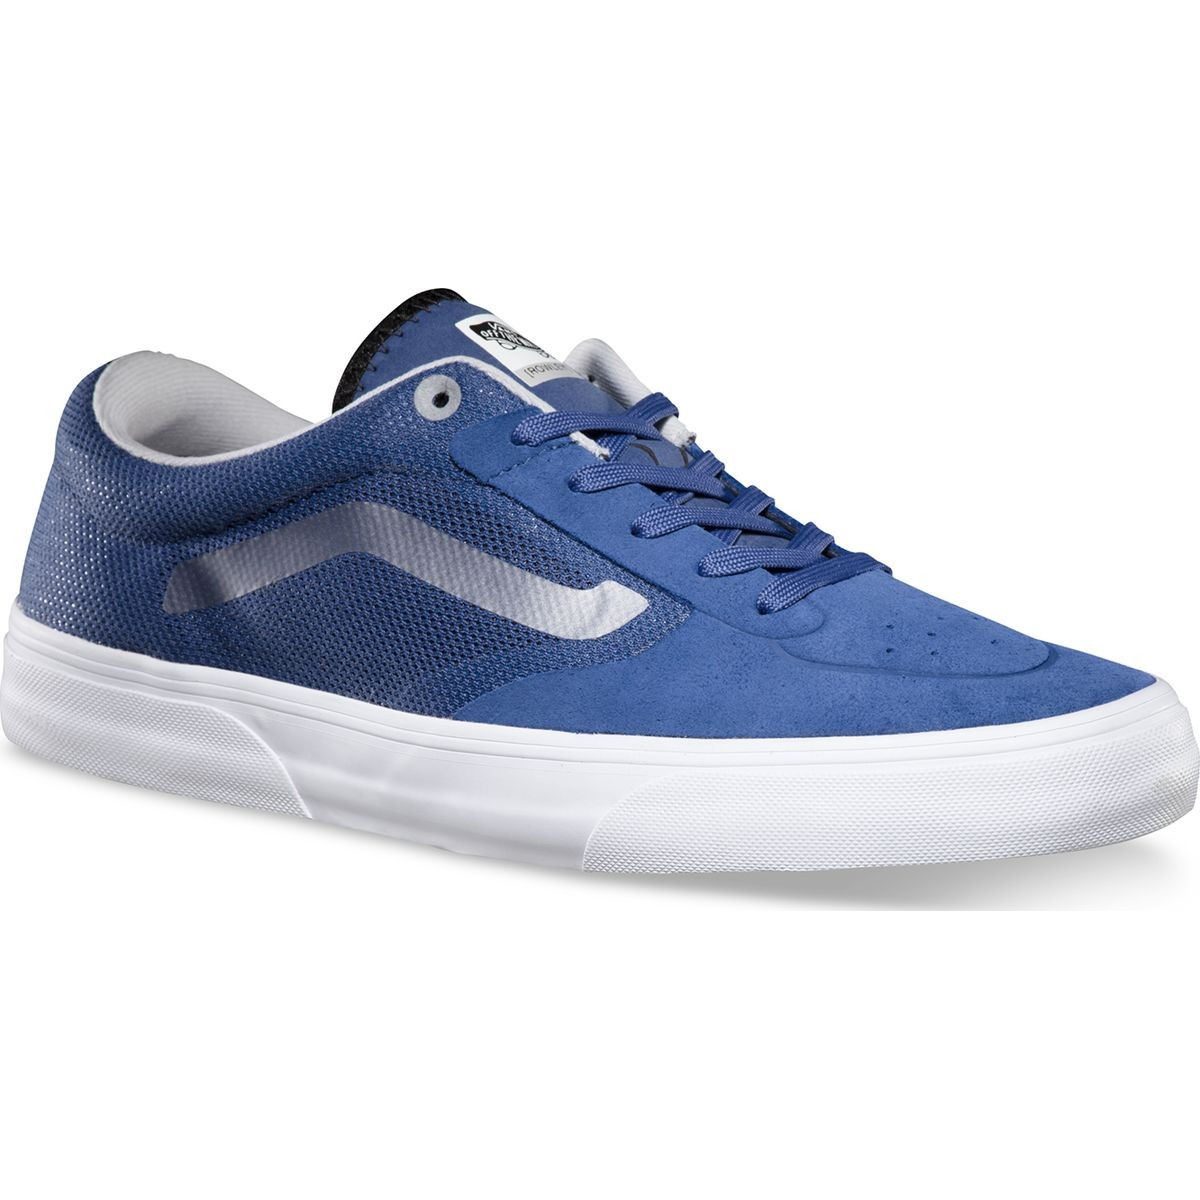 Vans Rowley Pro Lite Shoes - Classic Blue - 8.0